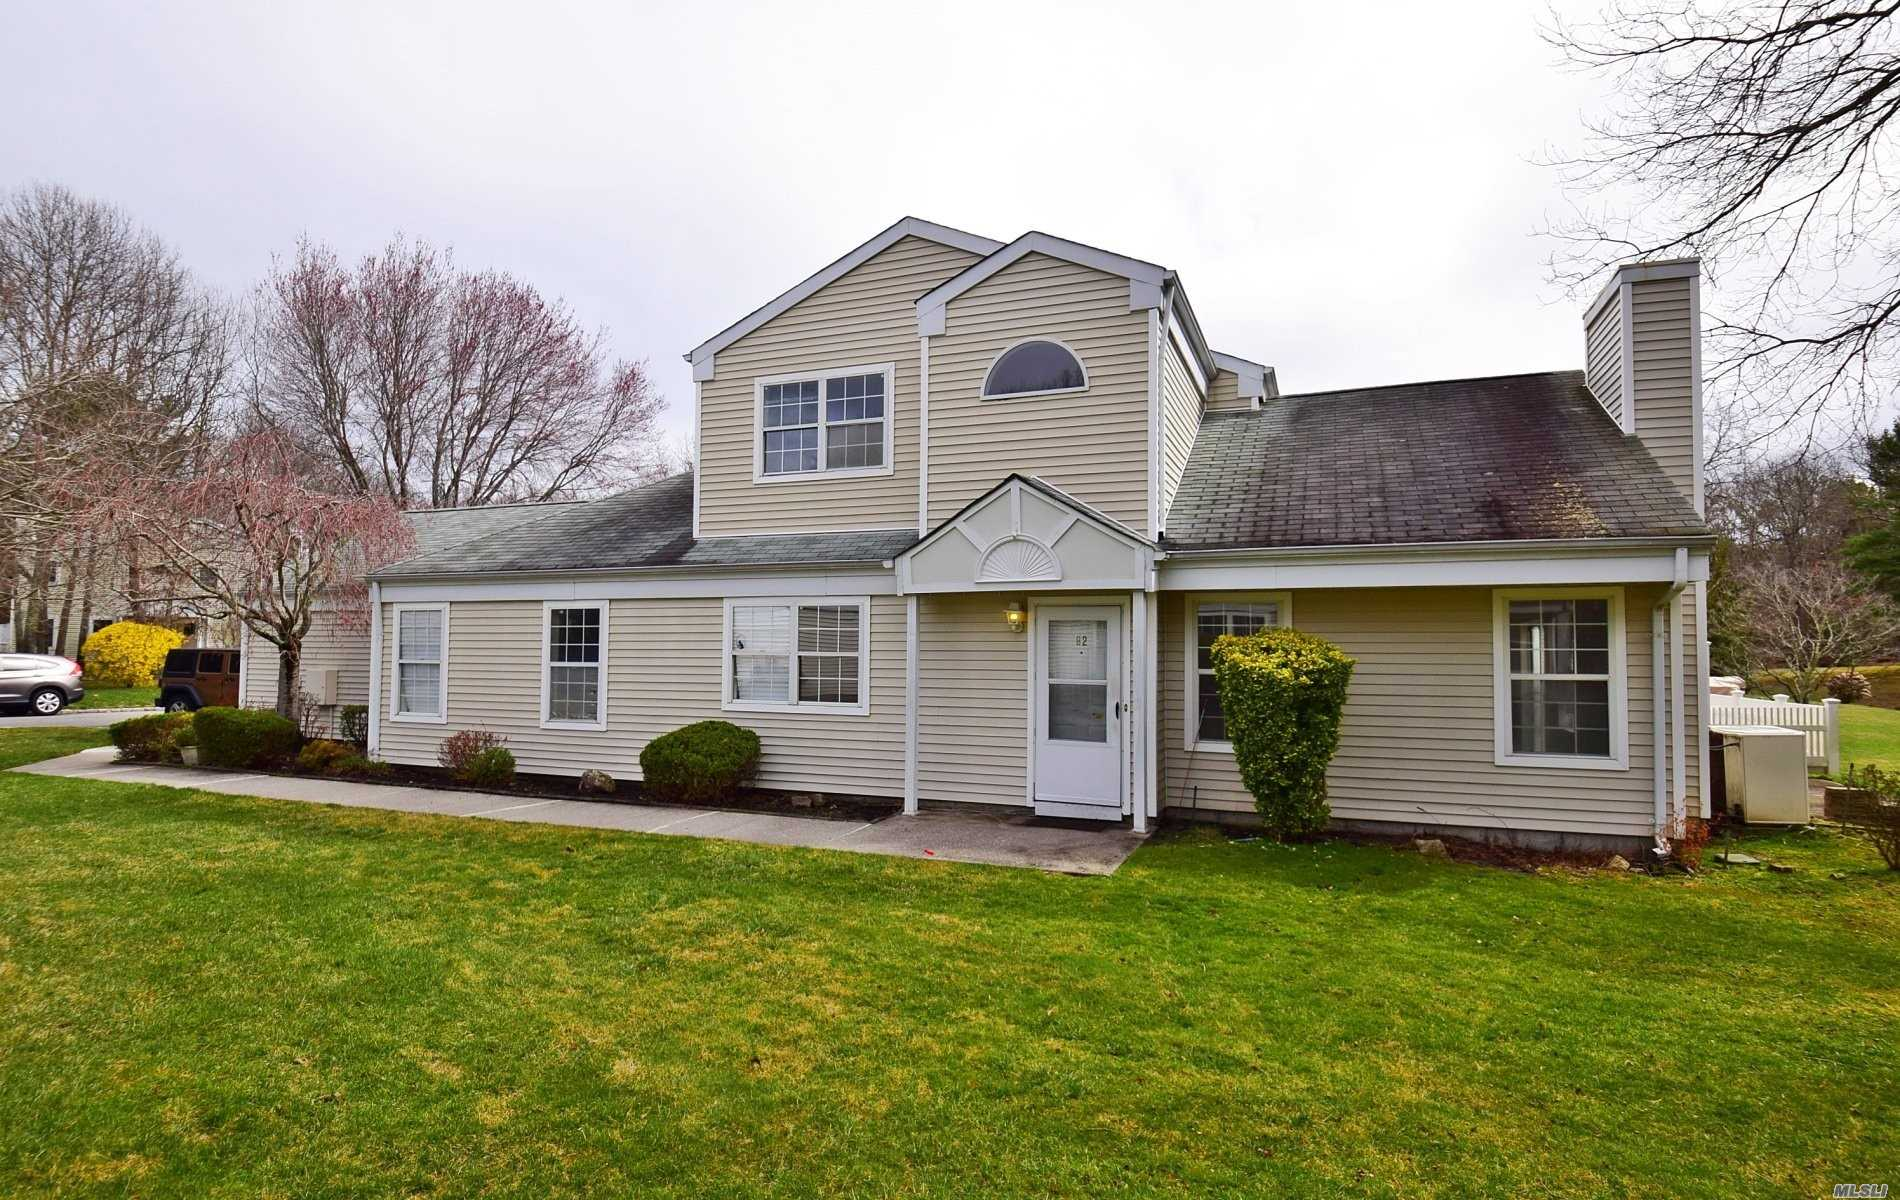 Property for sale at 82 Fox Court, Manorville NY 11949, Manorville,  New York 11949